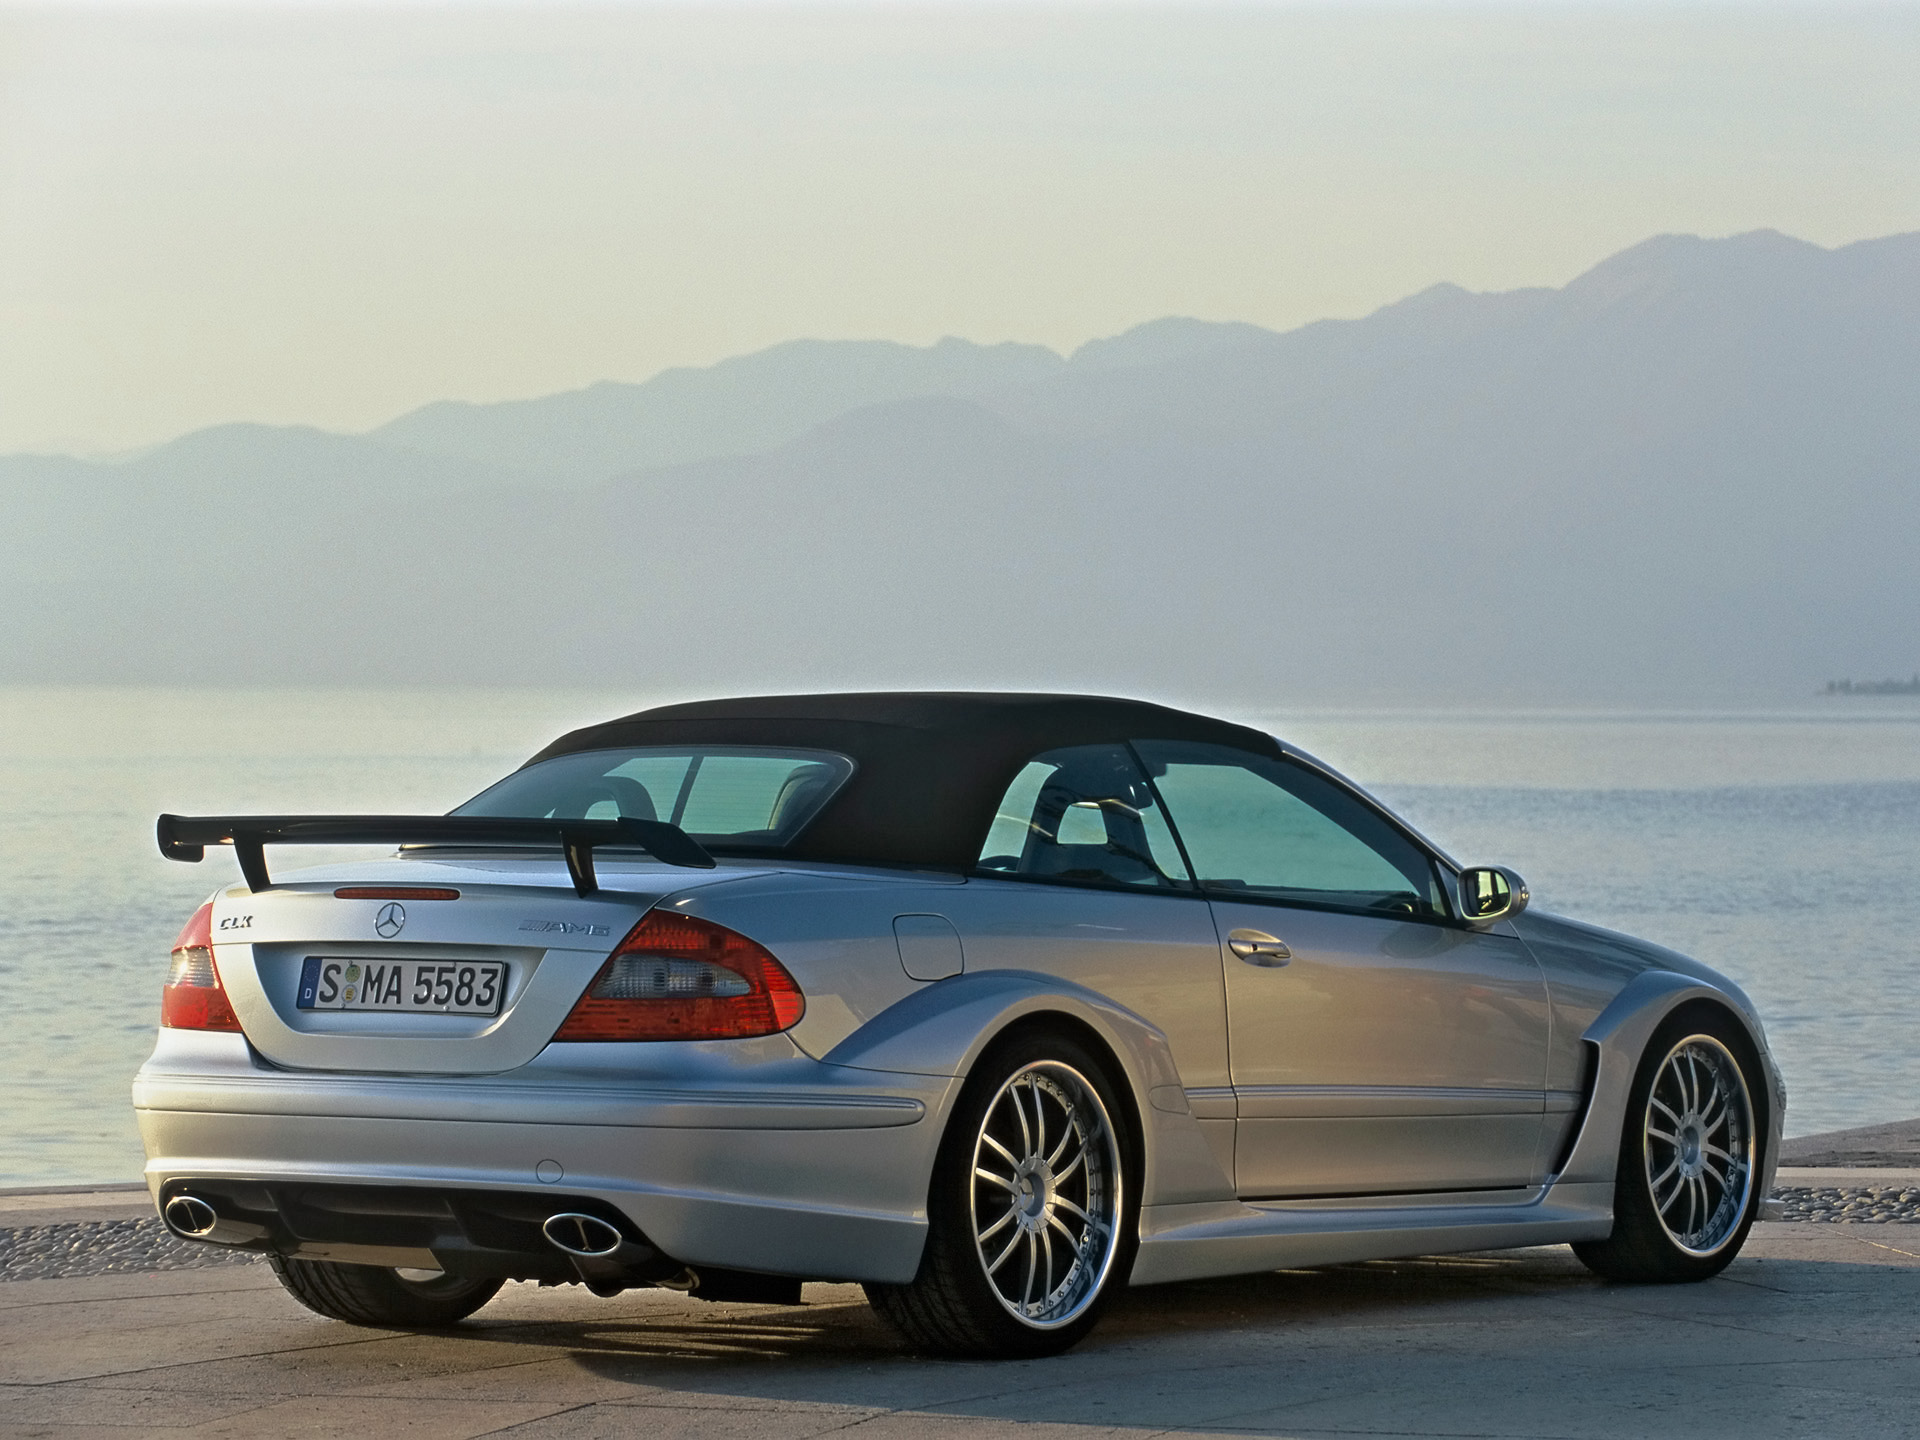 mercedes benz clk 63 amg cabrio photos 8 on better parts ltd. Black Bedroom Furniture Sets. Home Design Ideas